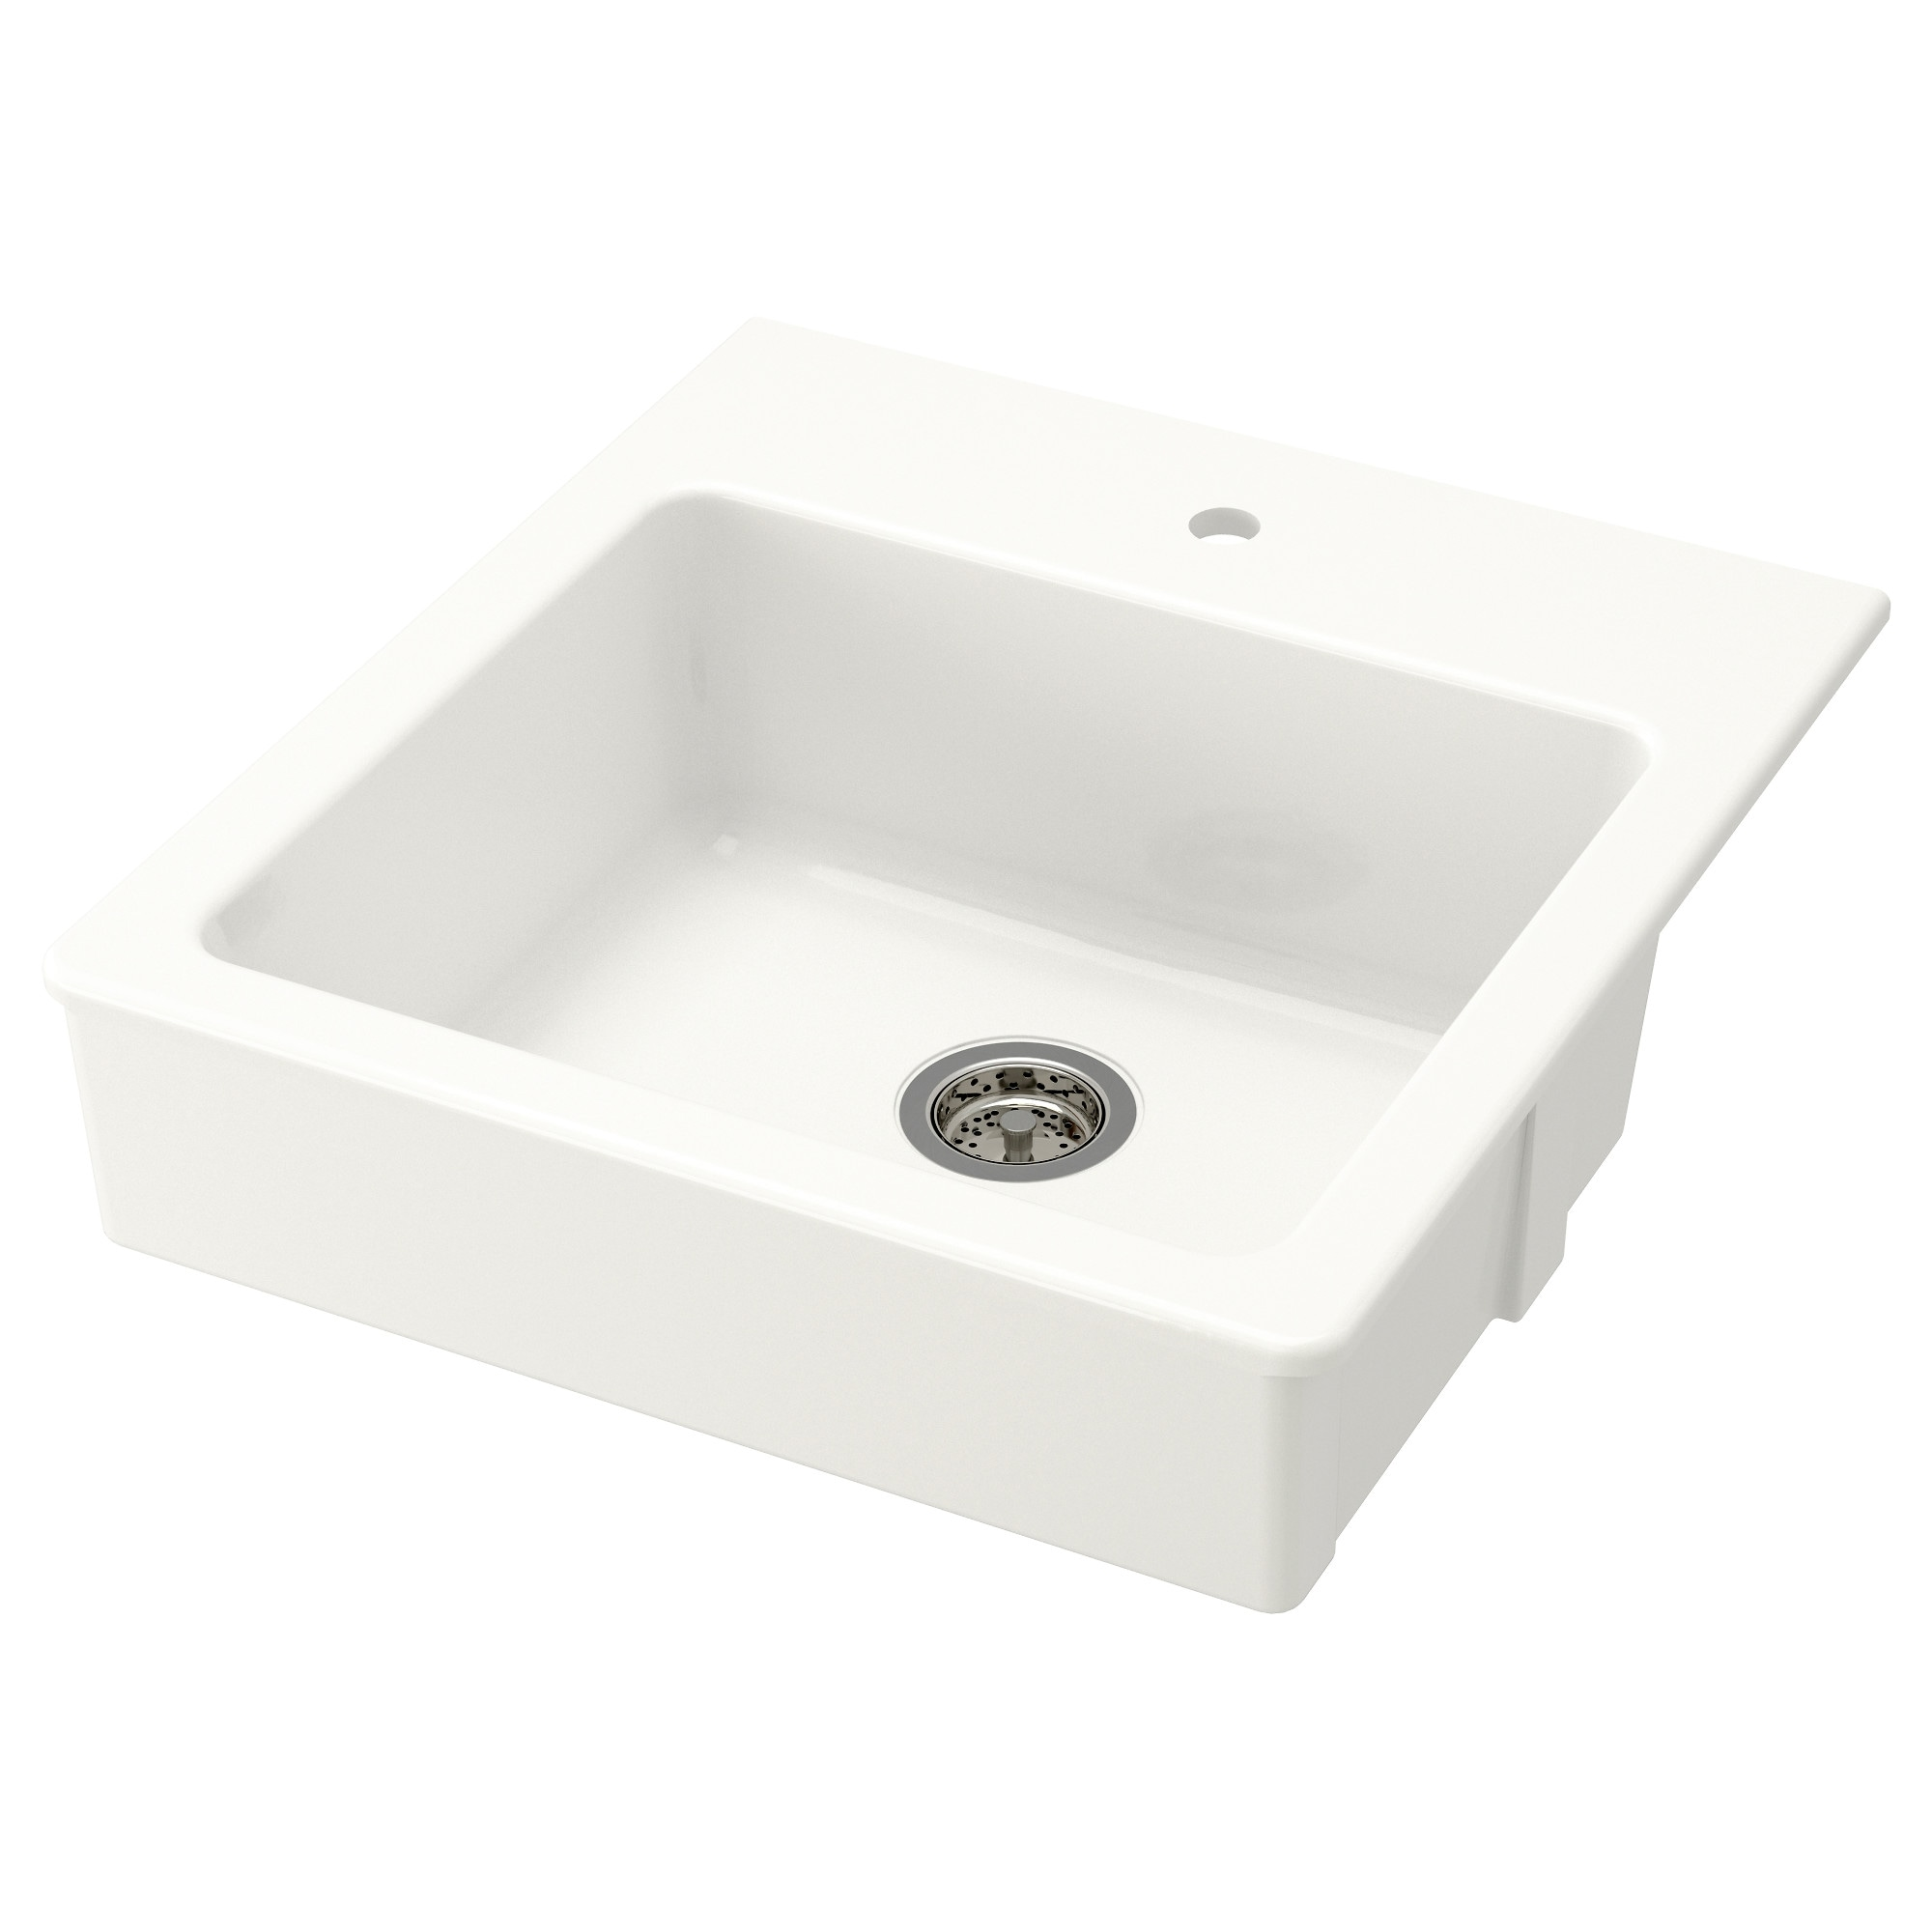 Kitchen cabinets 50cm depth - Domsj Onset Sink 1 Bowl White Bowl Depth 23 Cm Bowl